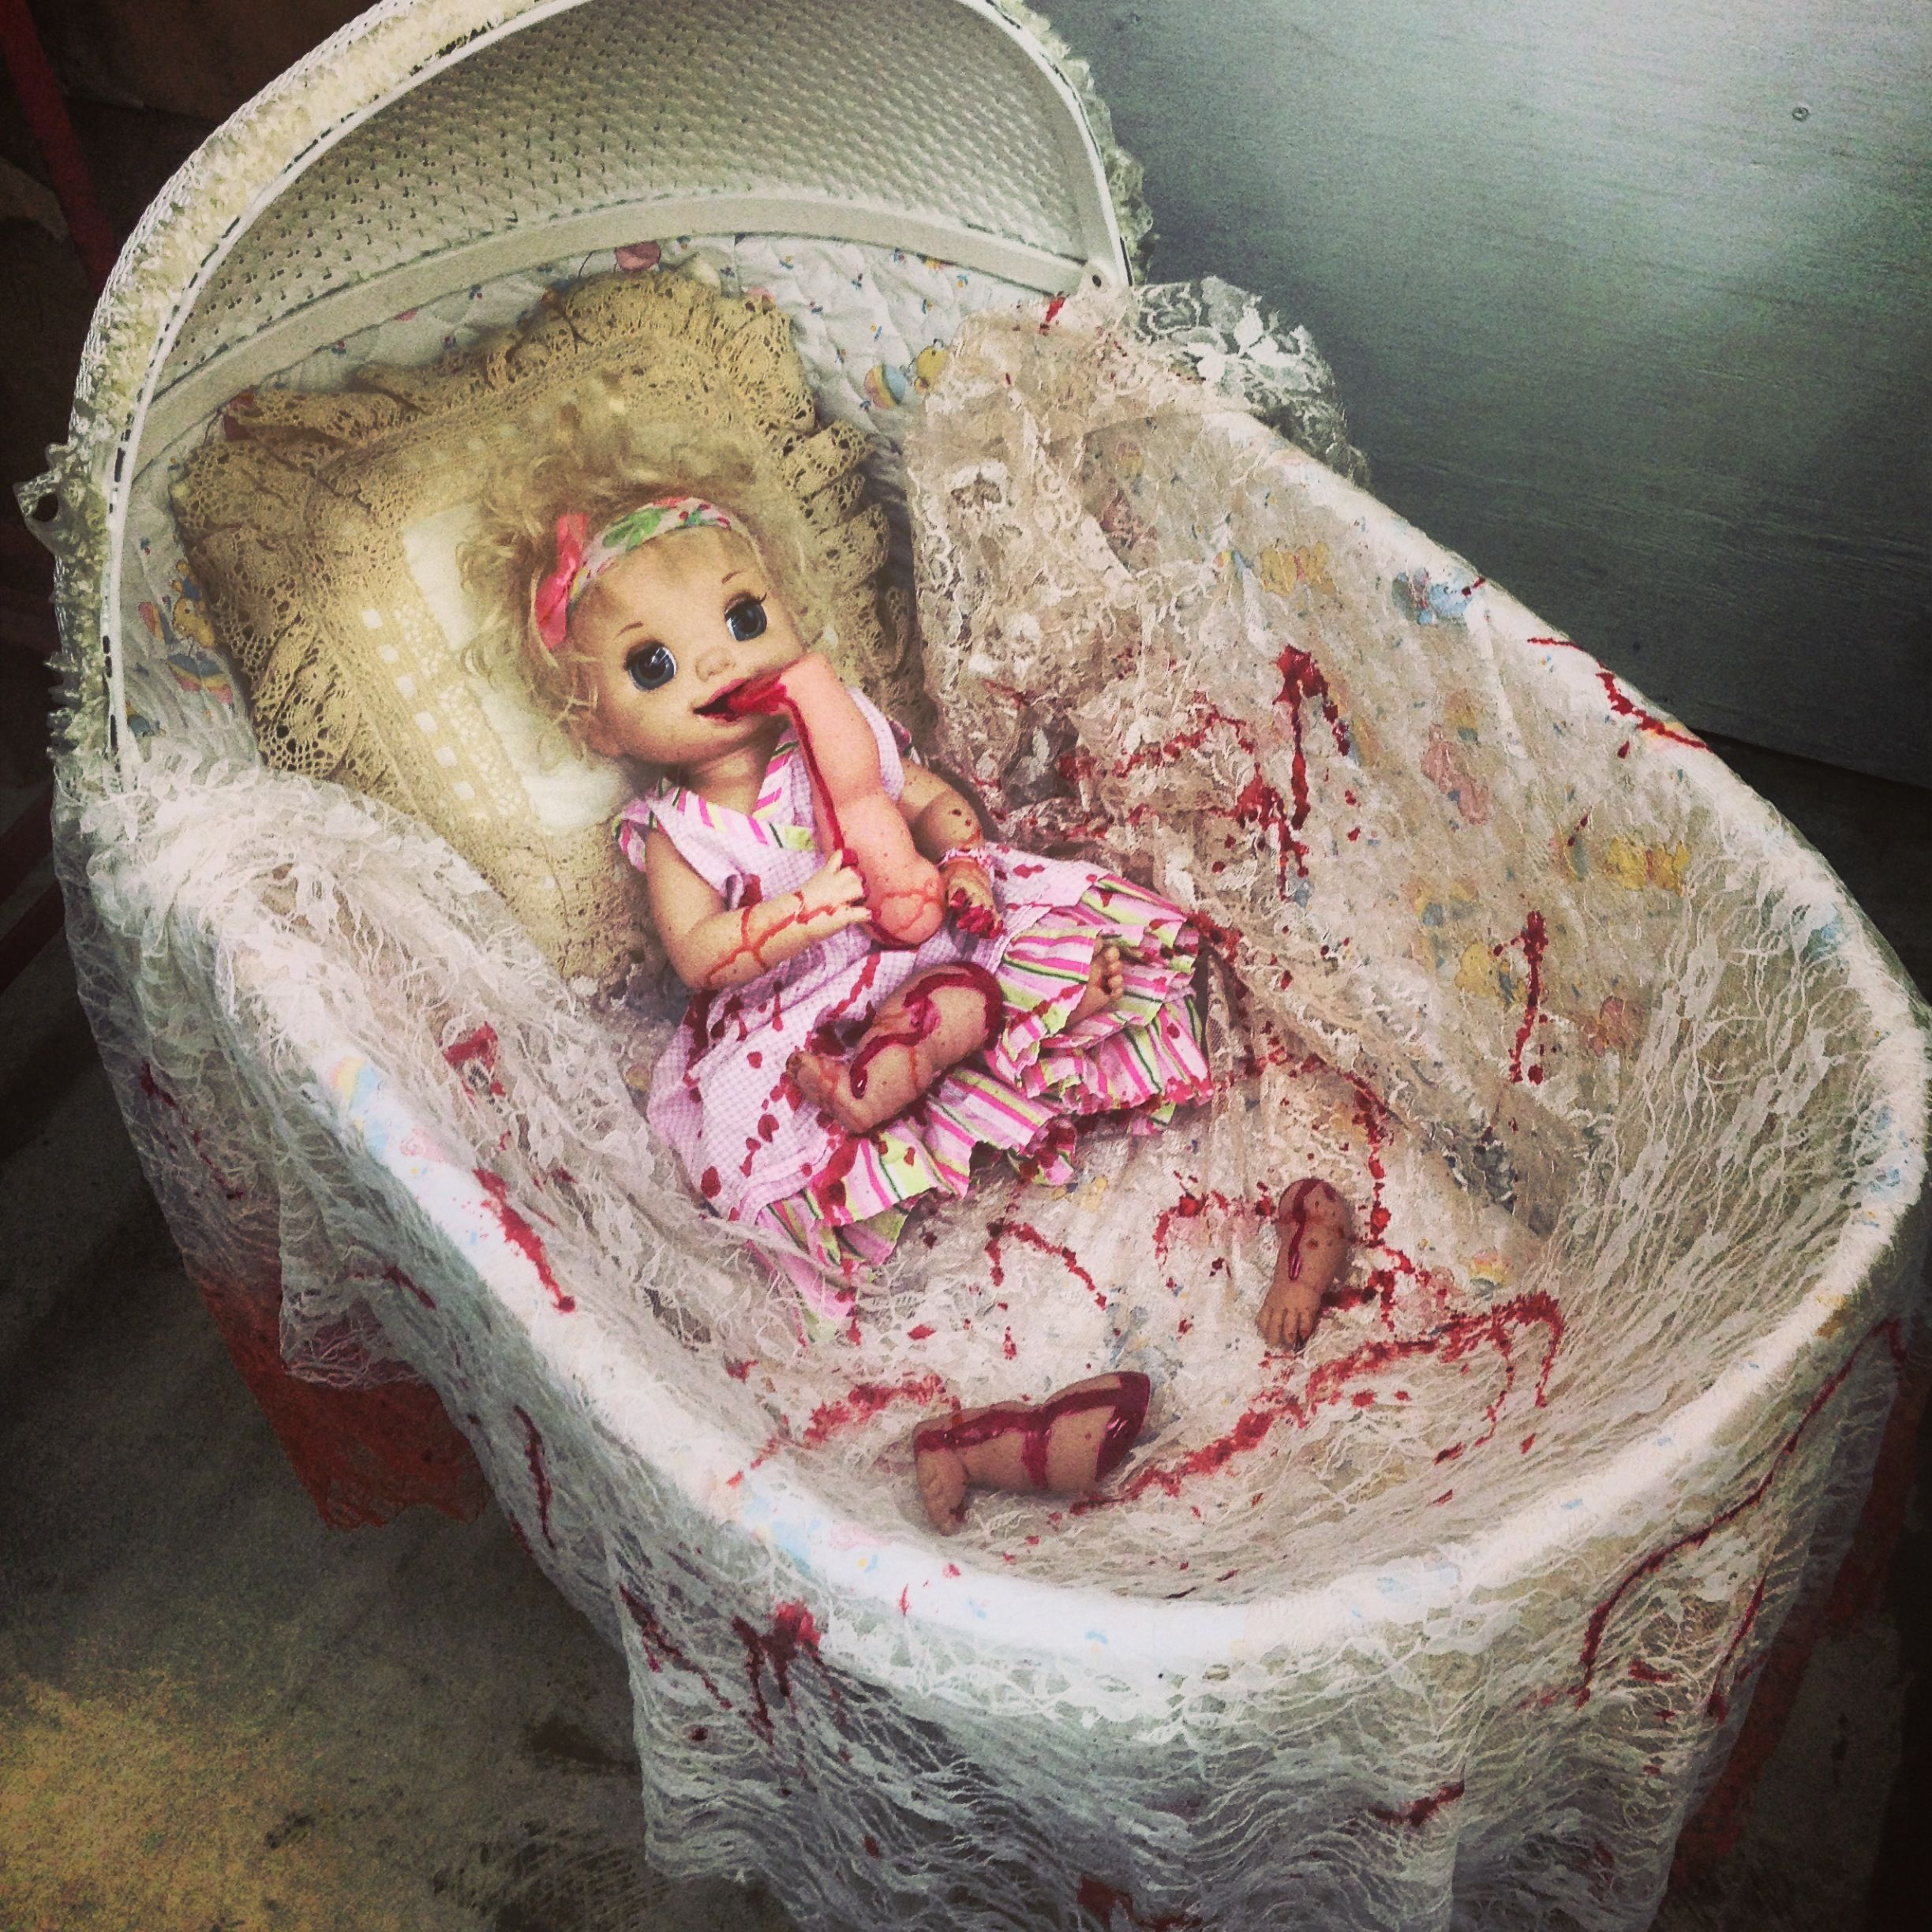 Create A Scary Scene From Thrift Store Dolls & Nail Polish